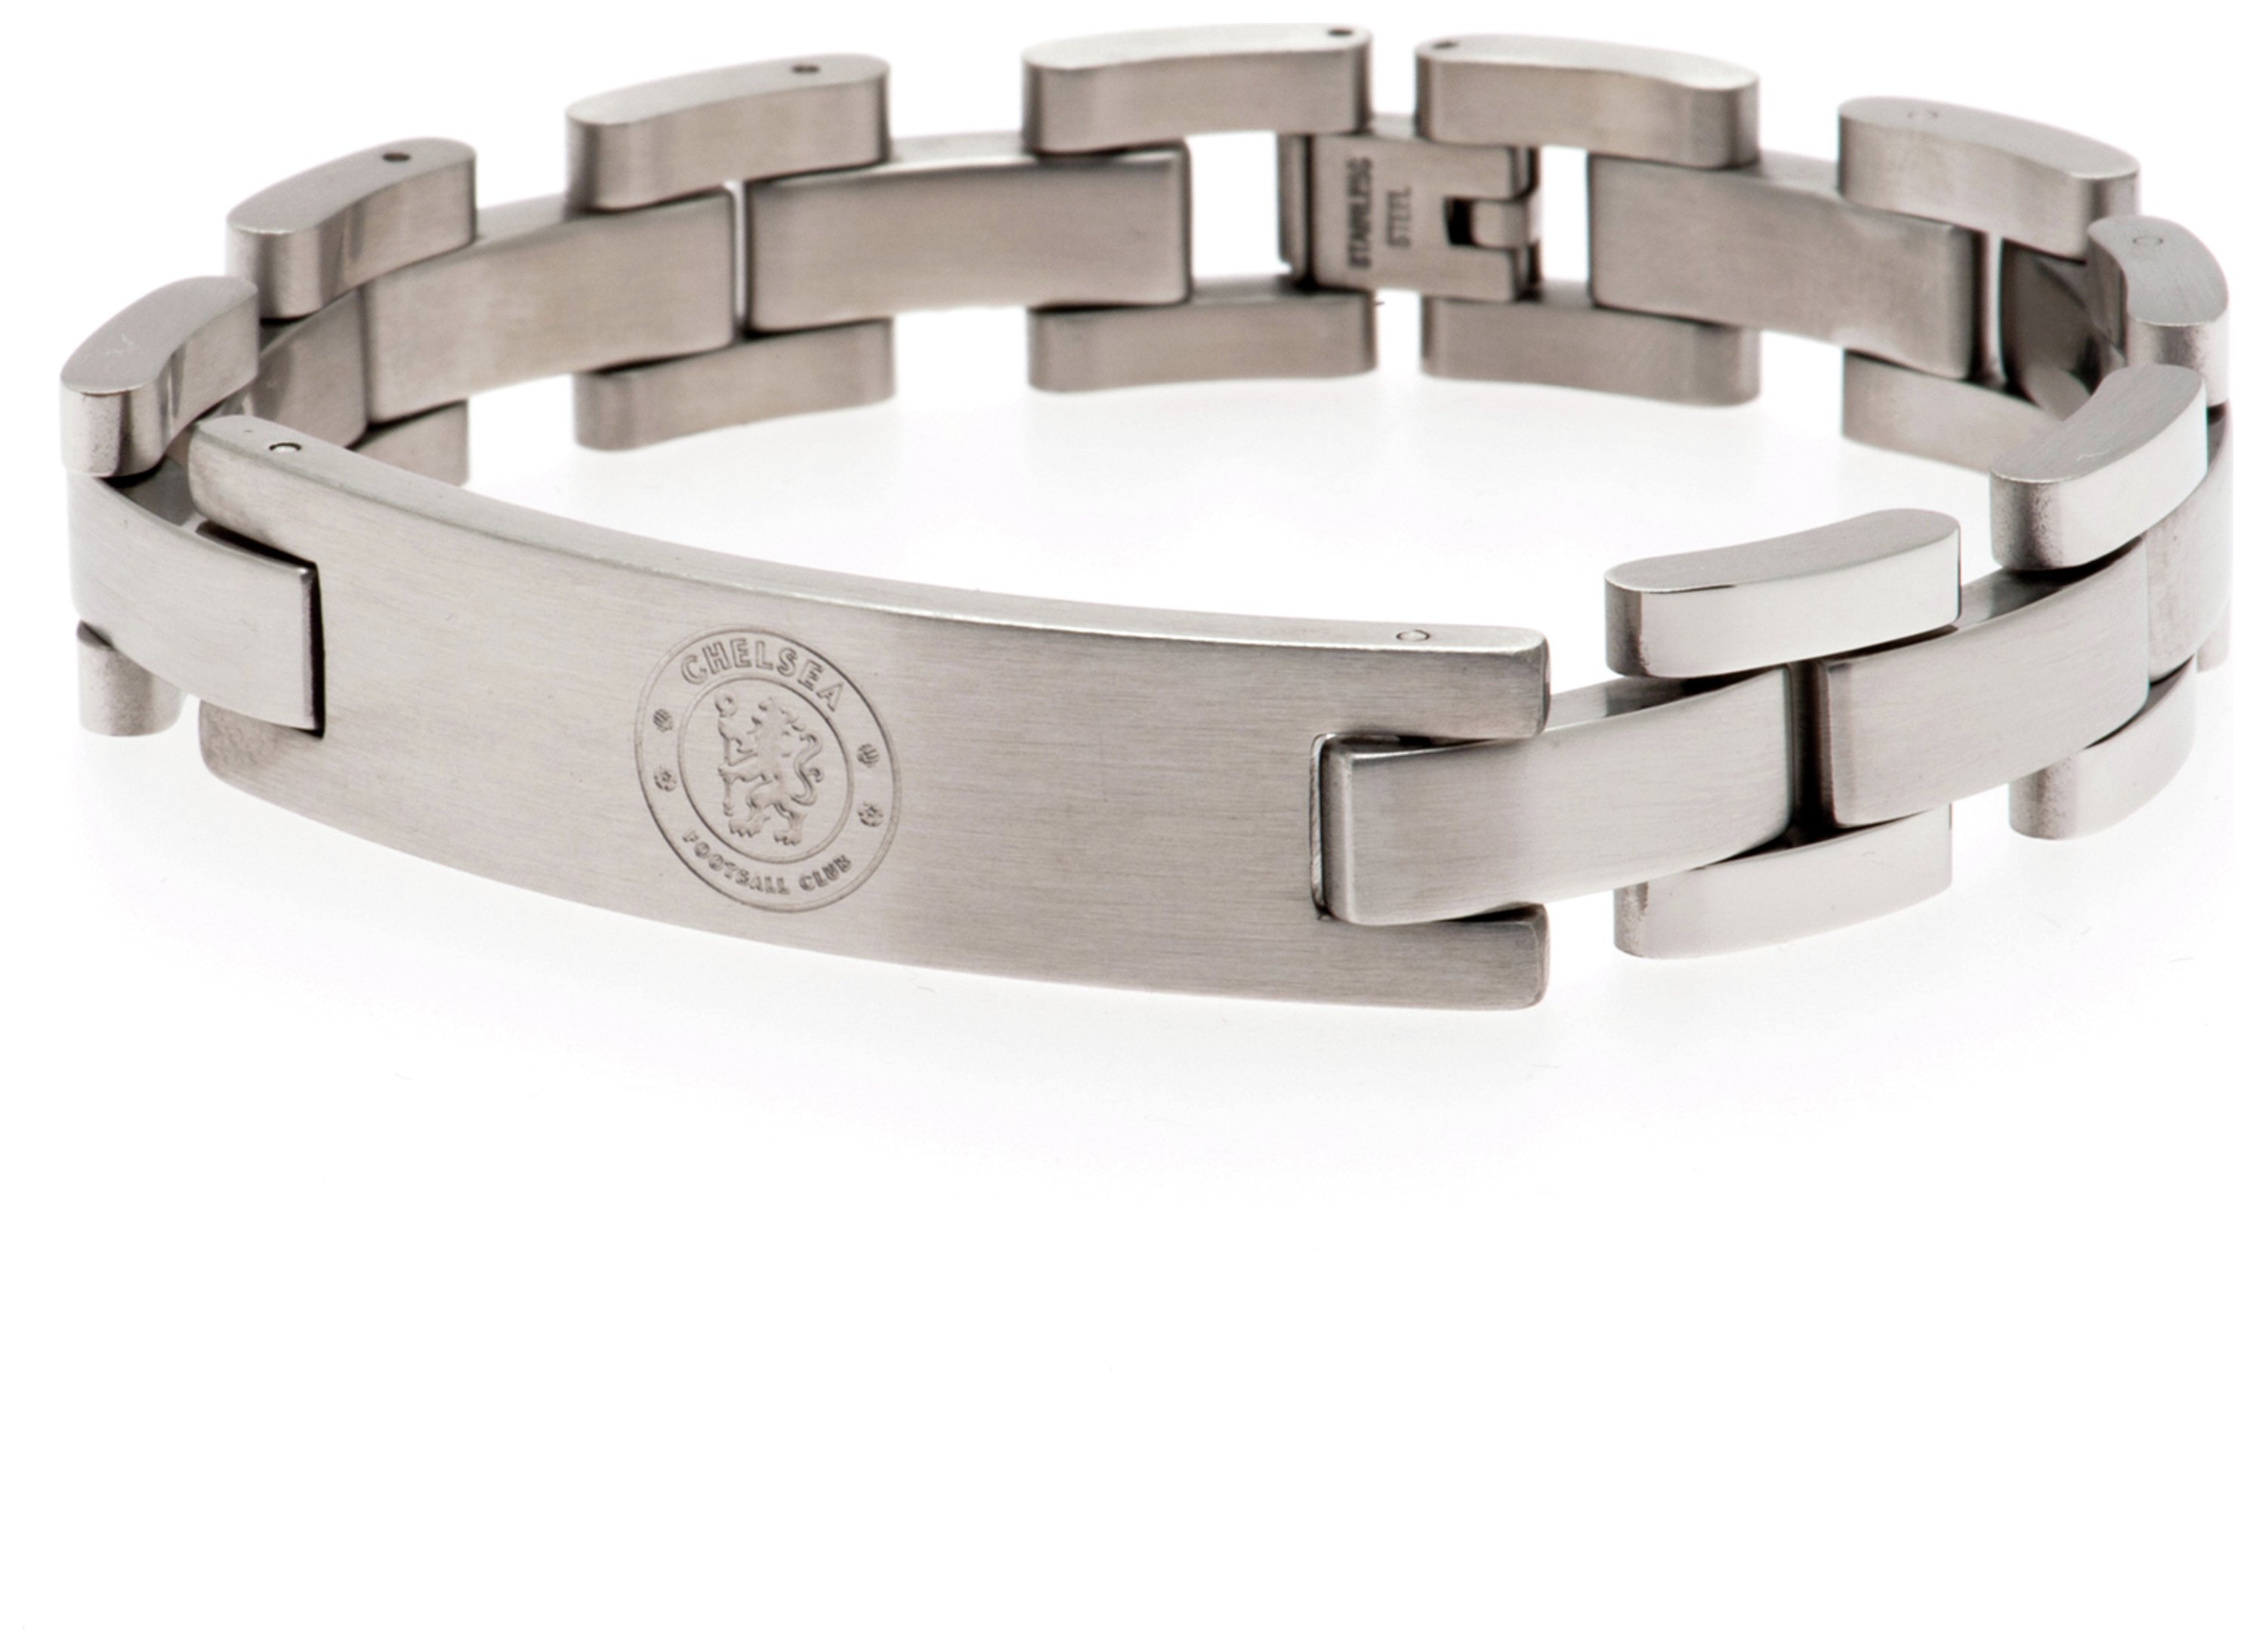 Image of Chelsea FC - Crest - Stainless Steel and Leather - Bracelet